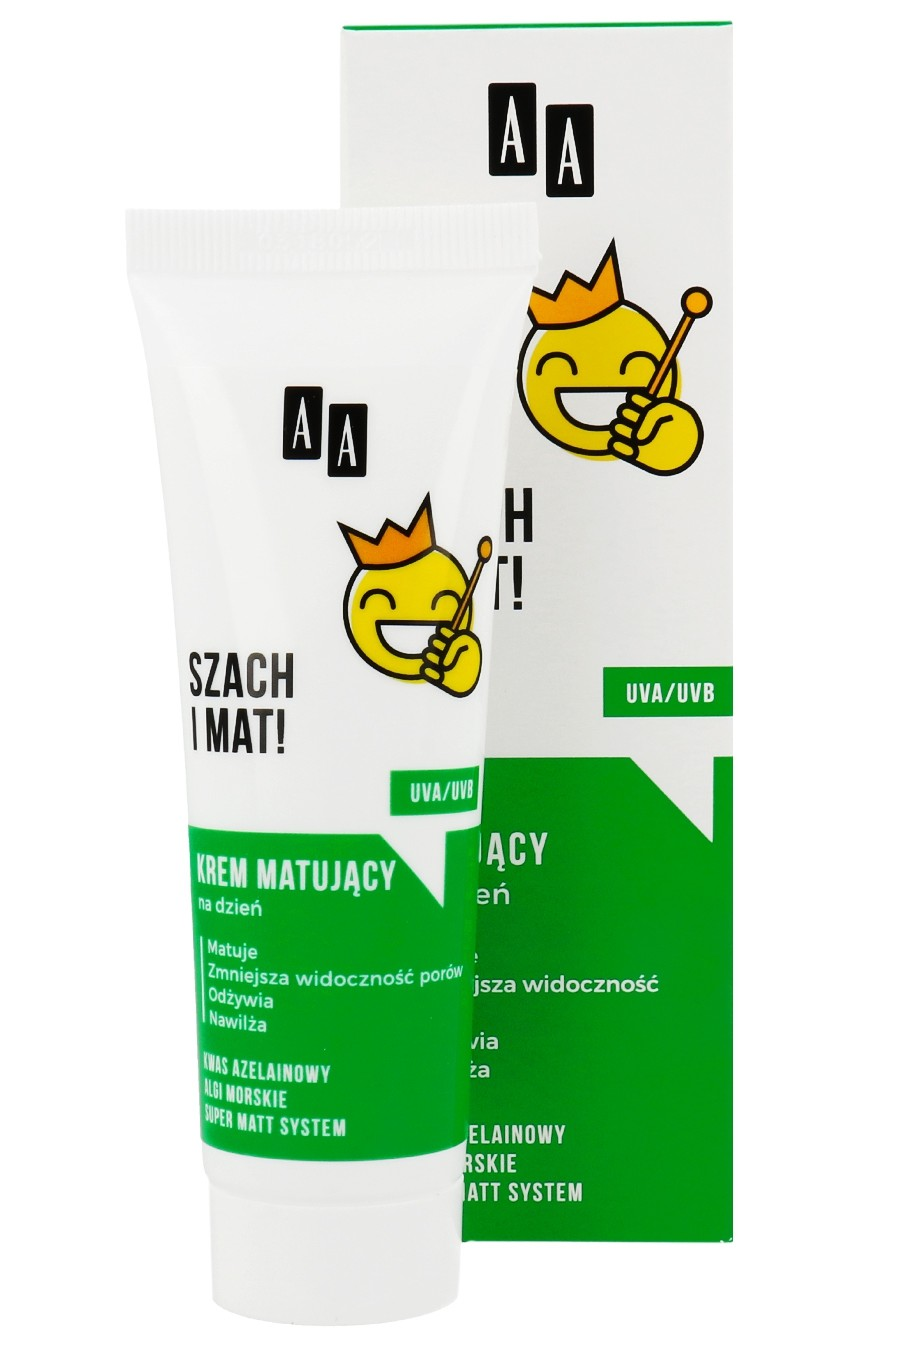 AA Emoji  Mattifying cream for the day of Check and Mat! Krem matujacy